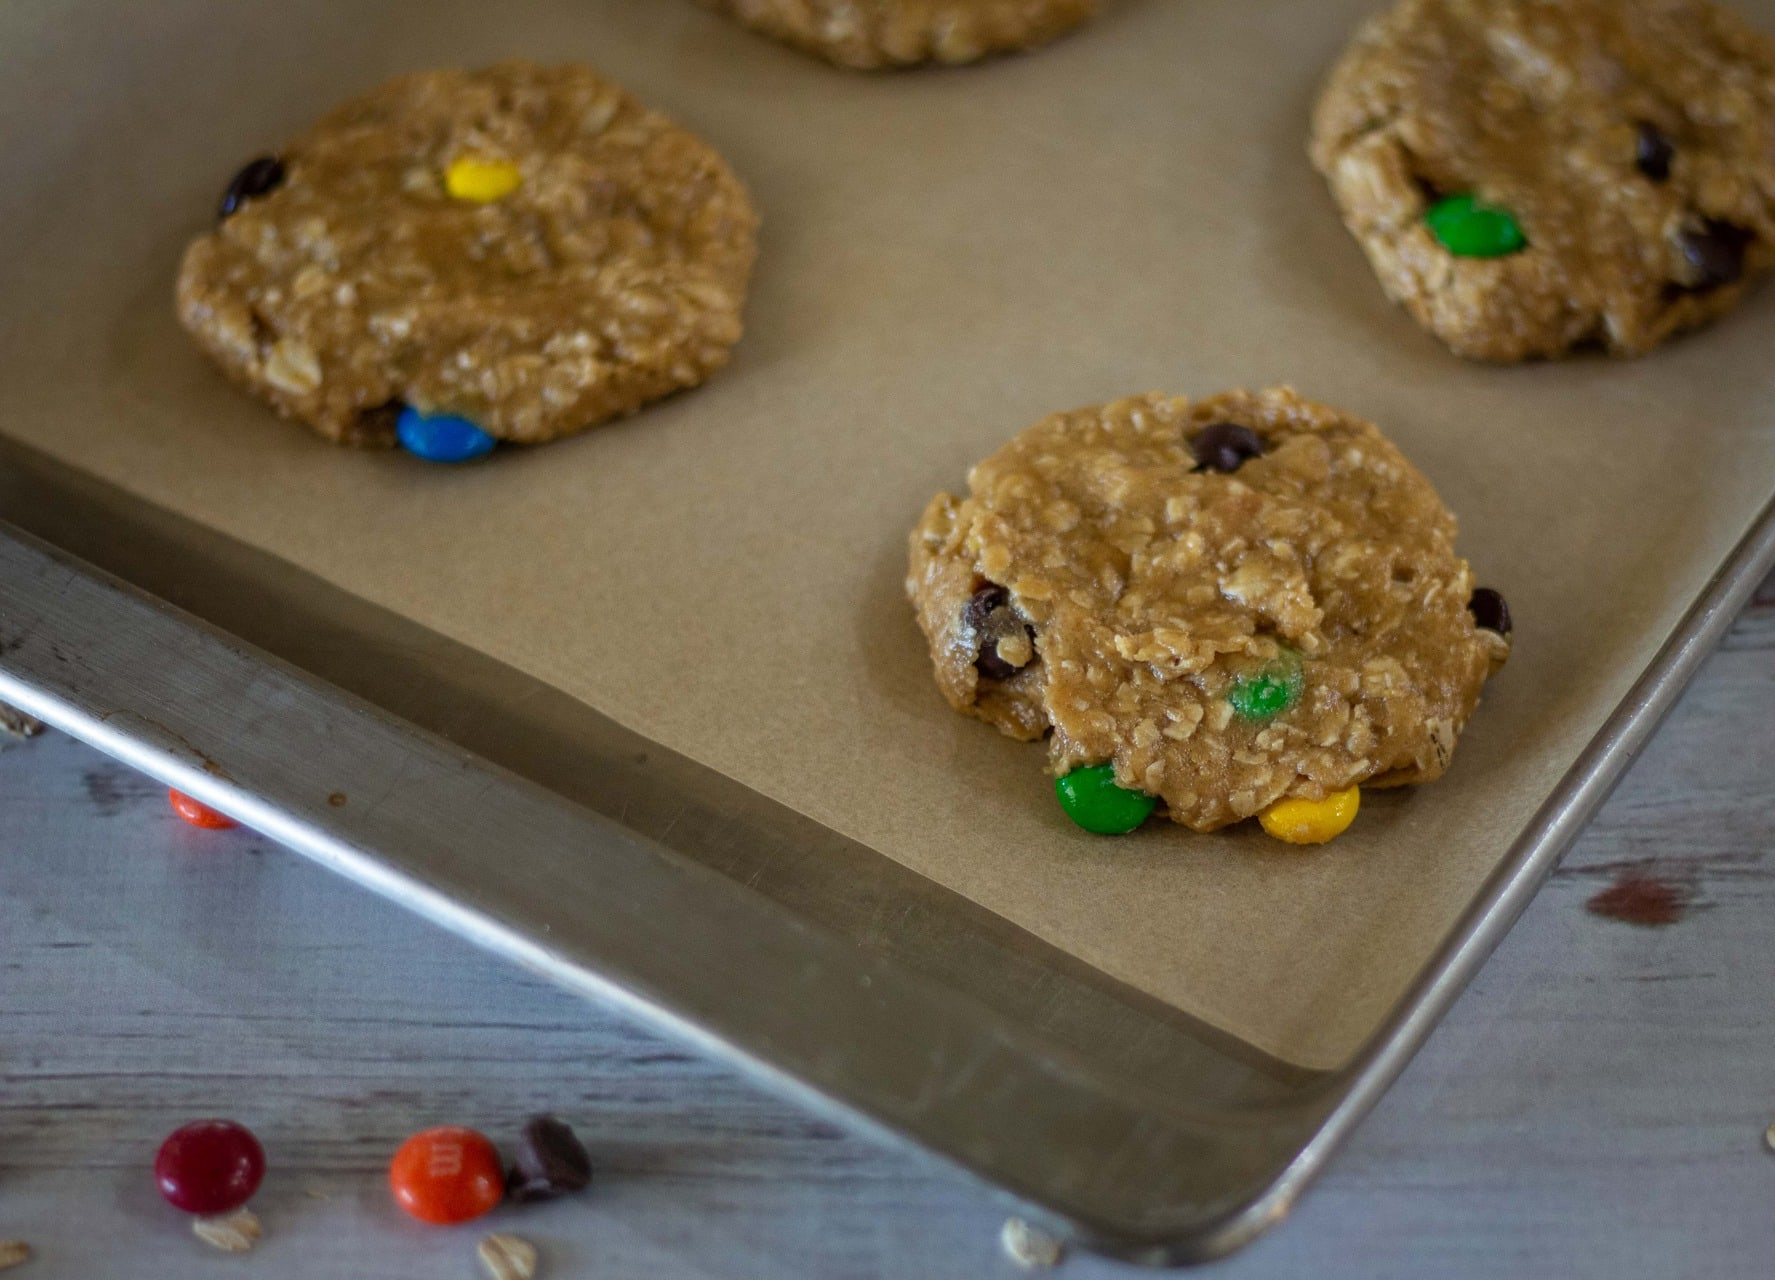 This Monster Cookies recipe combines peanut butter, oats, chocolate chips and M&M's for a giant, chewy cookie that will become a family favorite. Use different colored M&M's to make these giant monster cookies for any holiday or occasion!